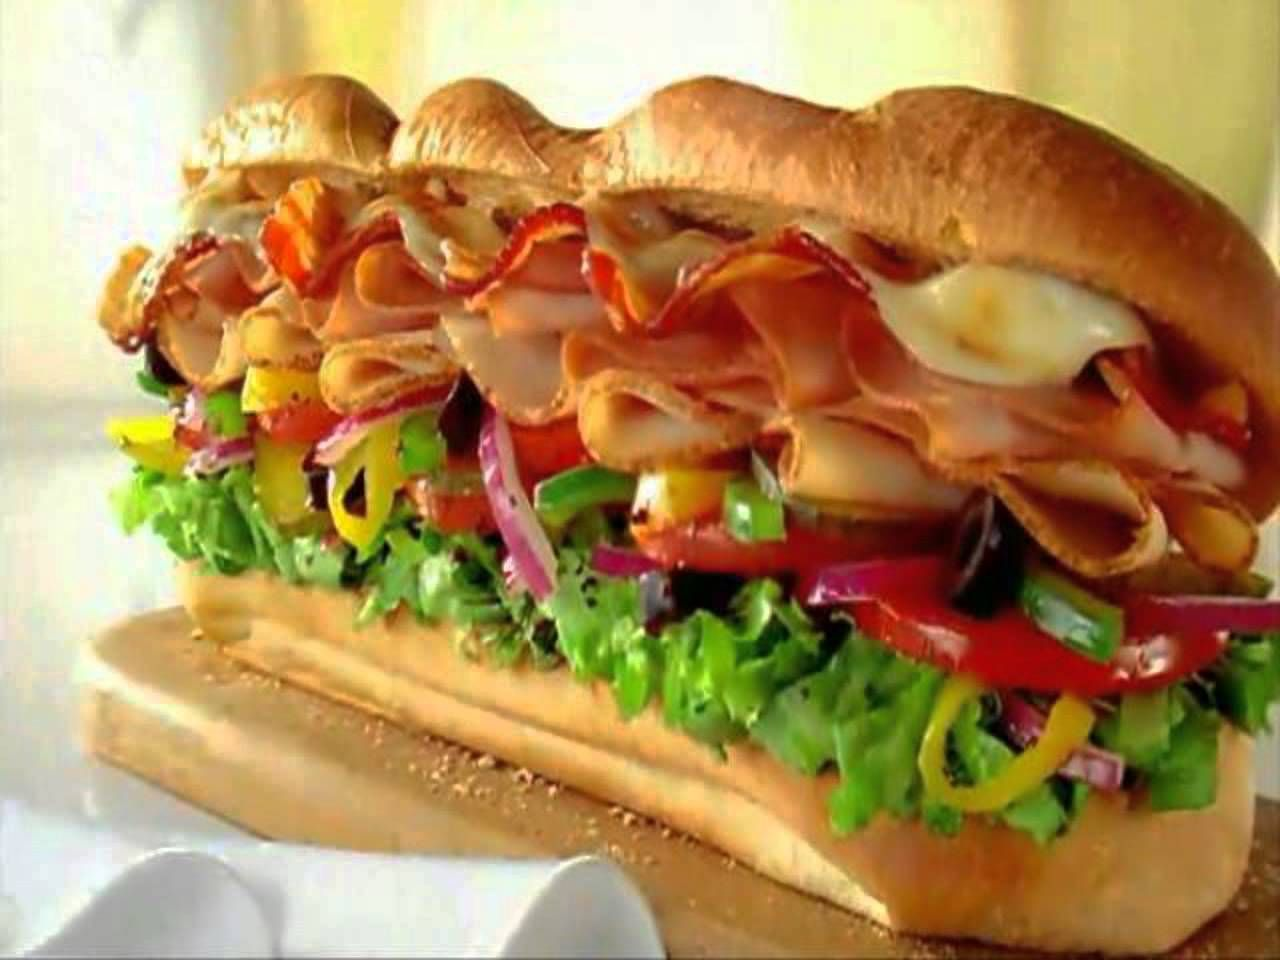 Pin By Hometownoc On Subway Food Food And Drink Eat